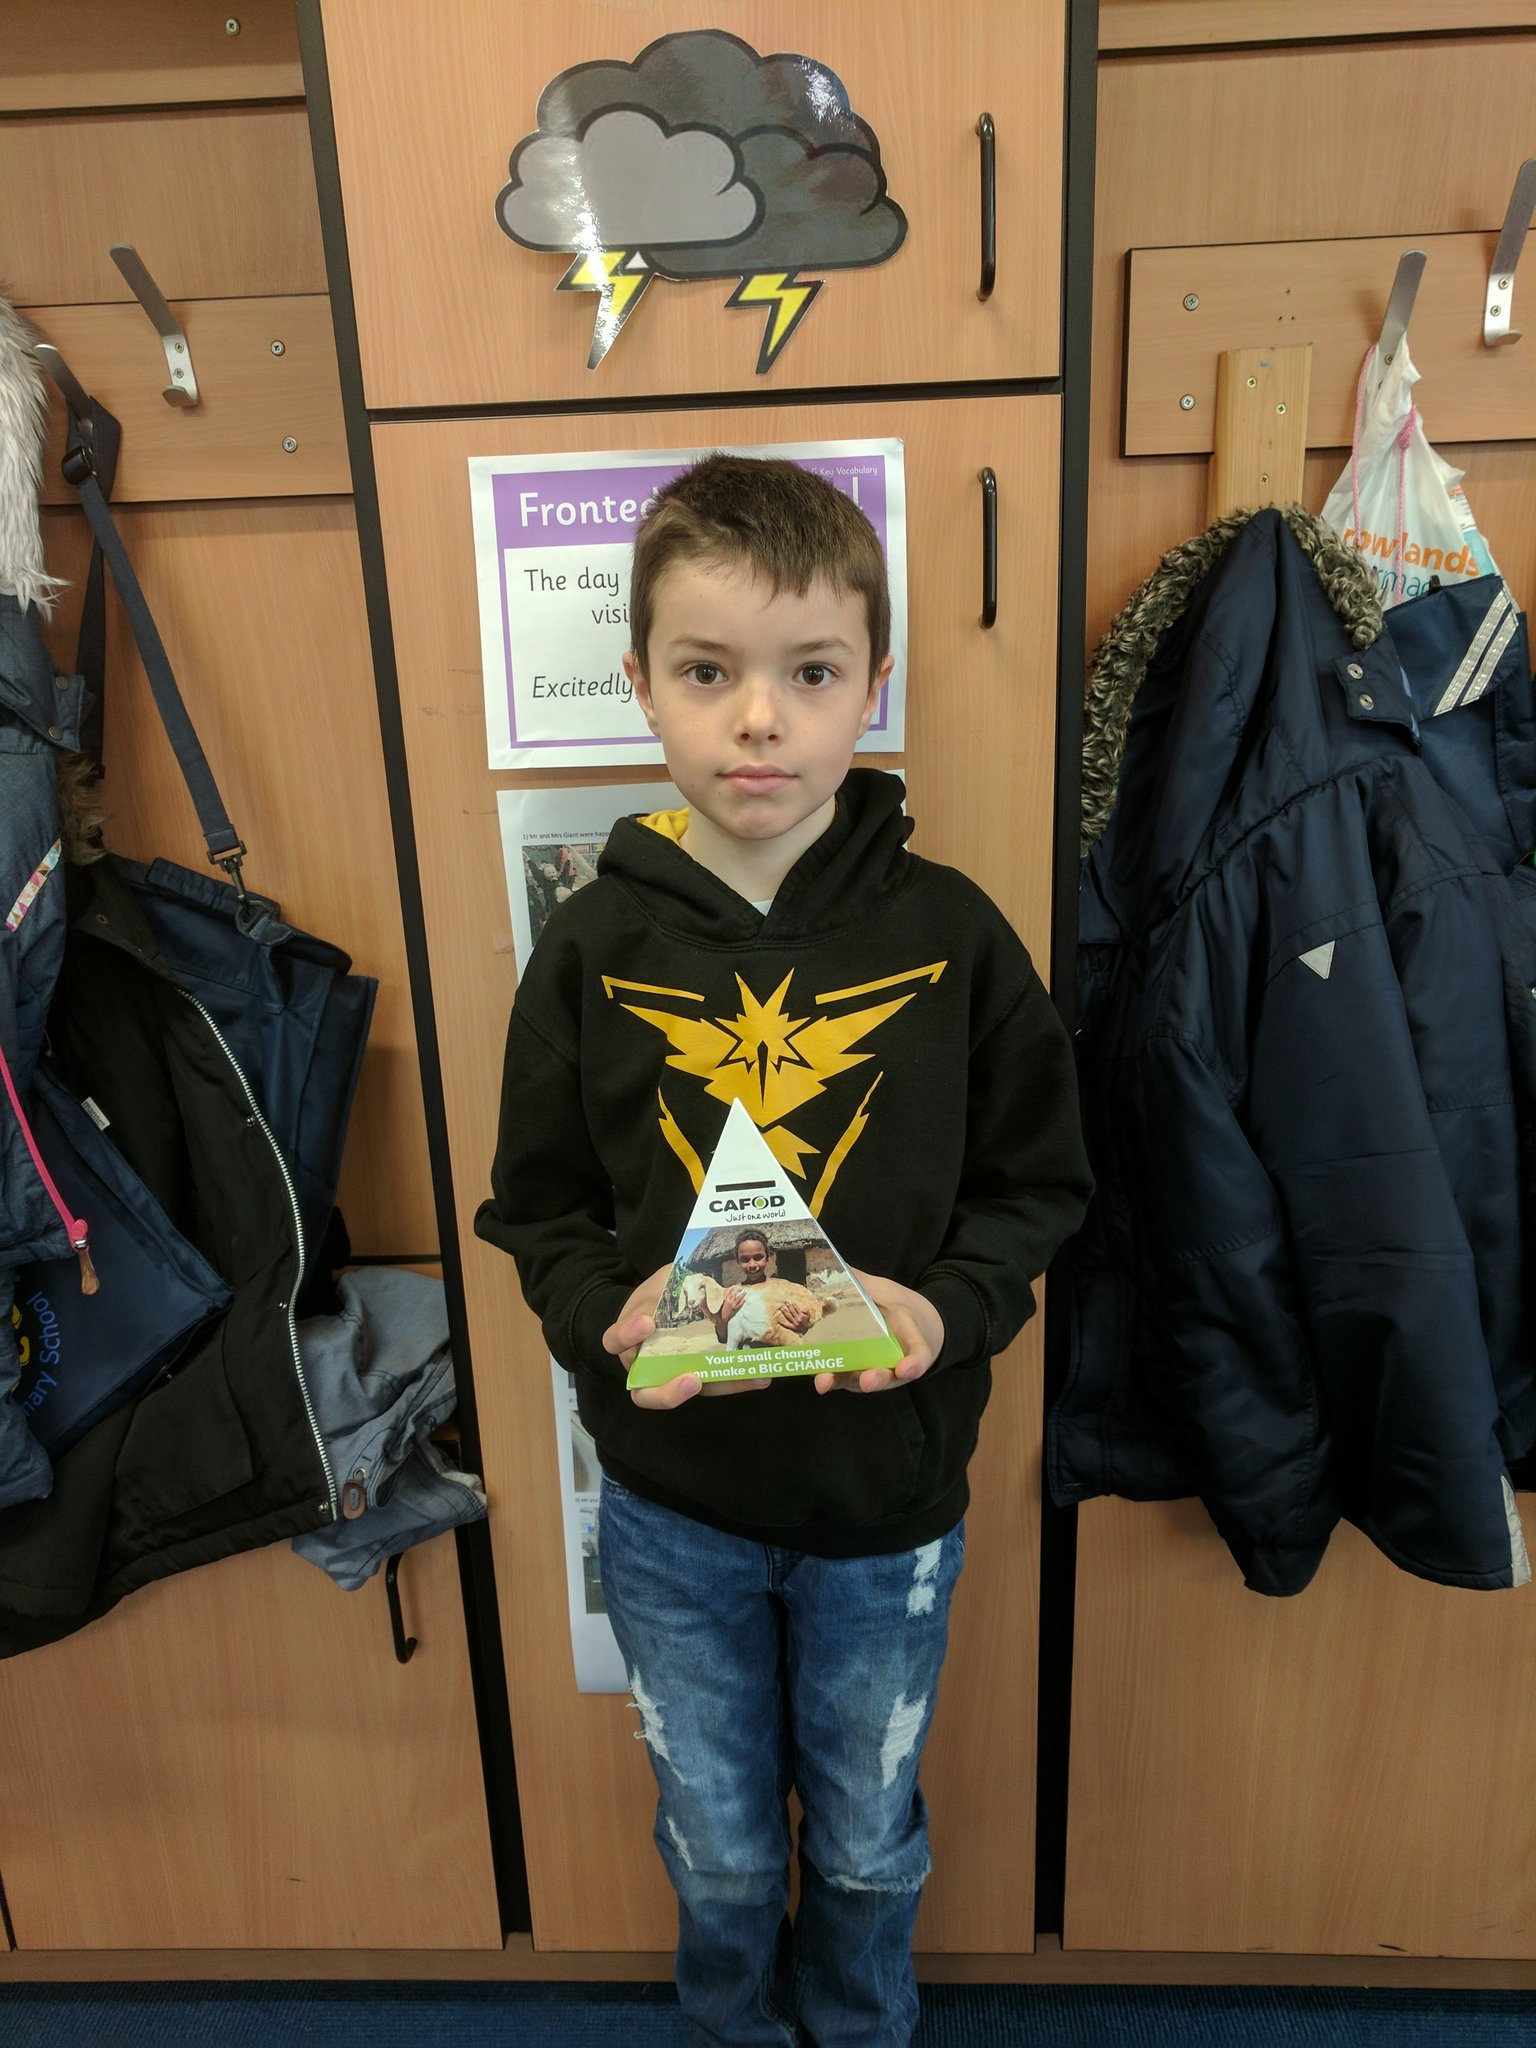 Josh has donated over £25 to help make little fish into big fish! #generous @CAFODSchools @CAFOD https://t.co/Eh2r1OPiBI